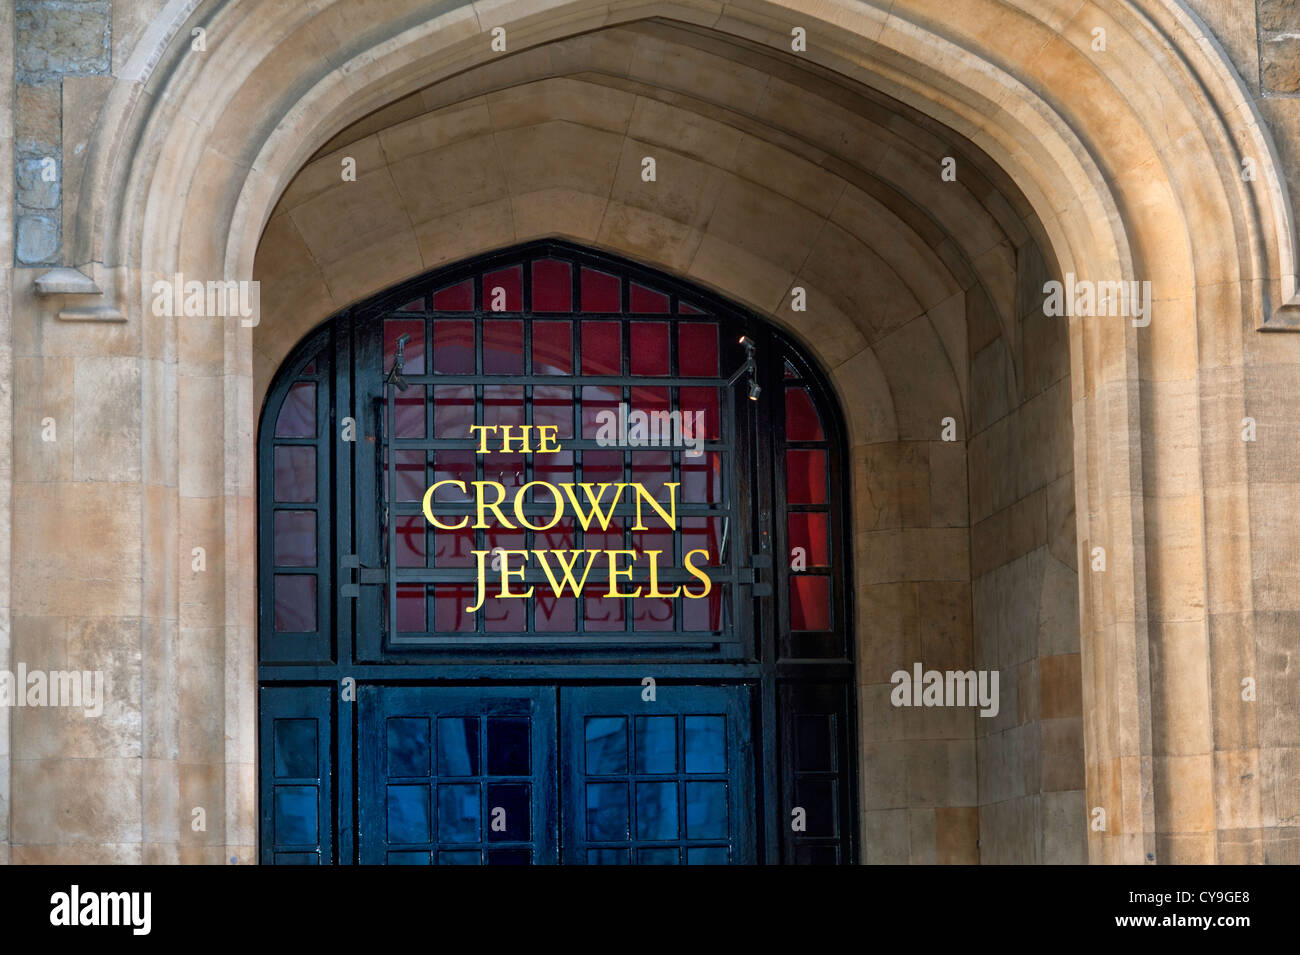 The Crown Jewels sign at the entrance to the Jewel House Tower of London London EC3 UK - Stock Image